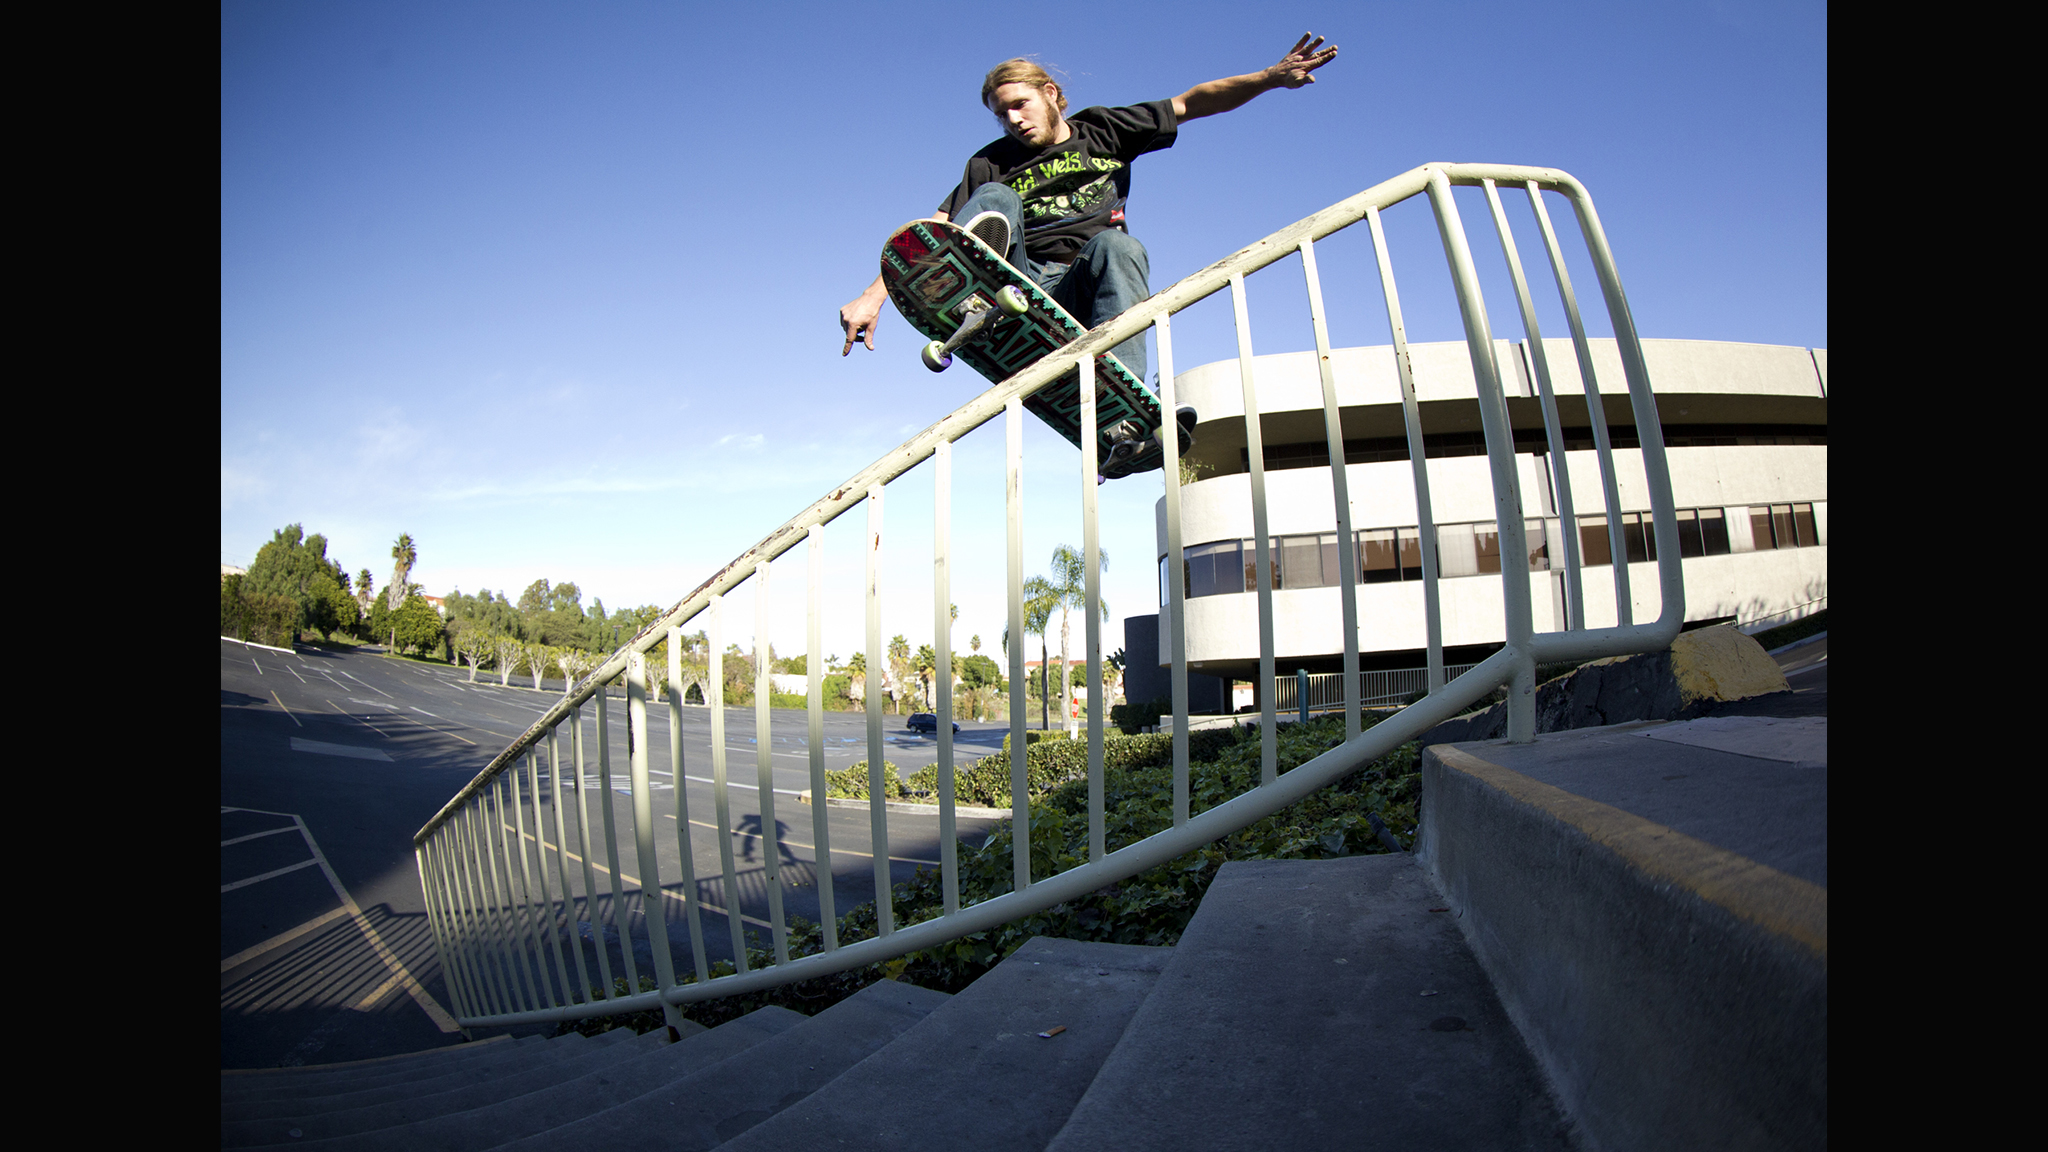 Jon Dickson, Gap to F/S boardslide